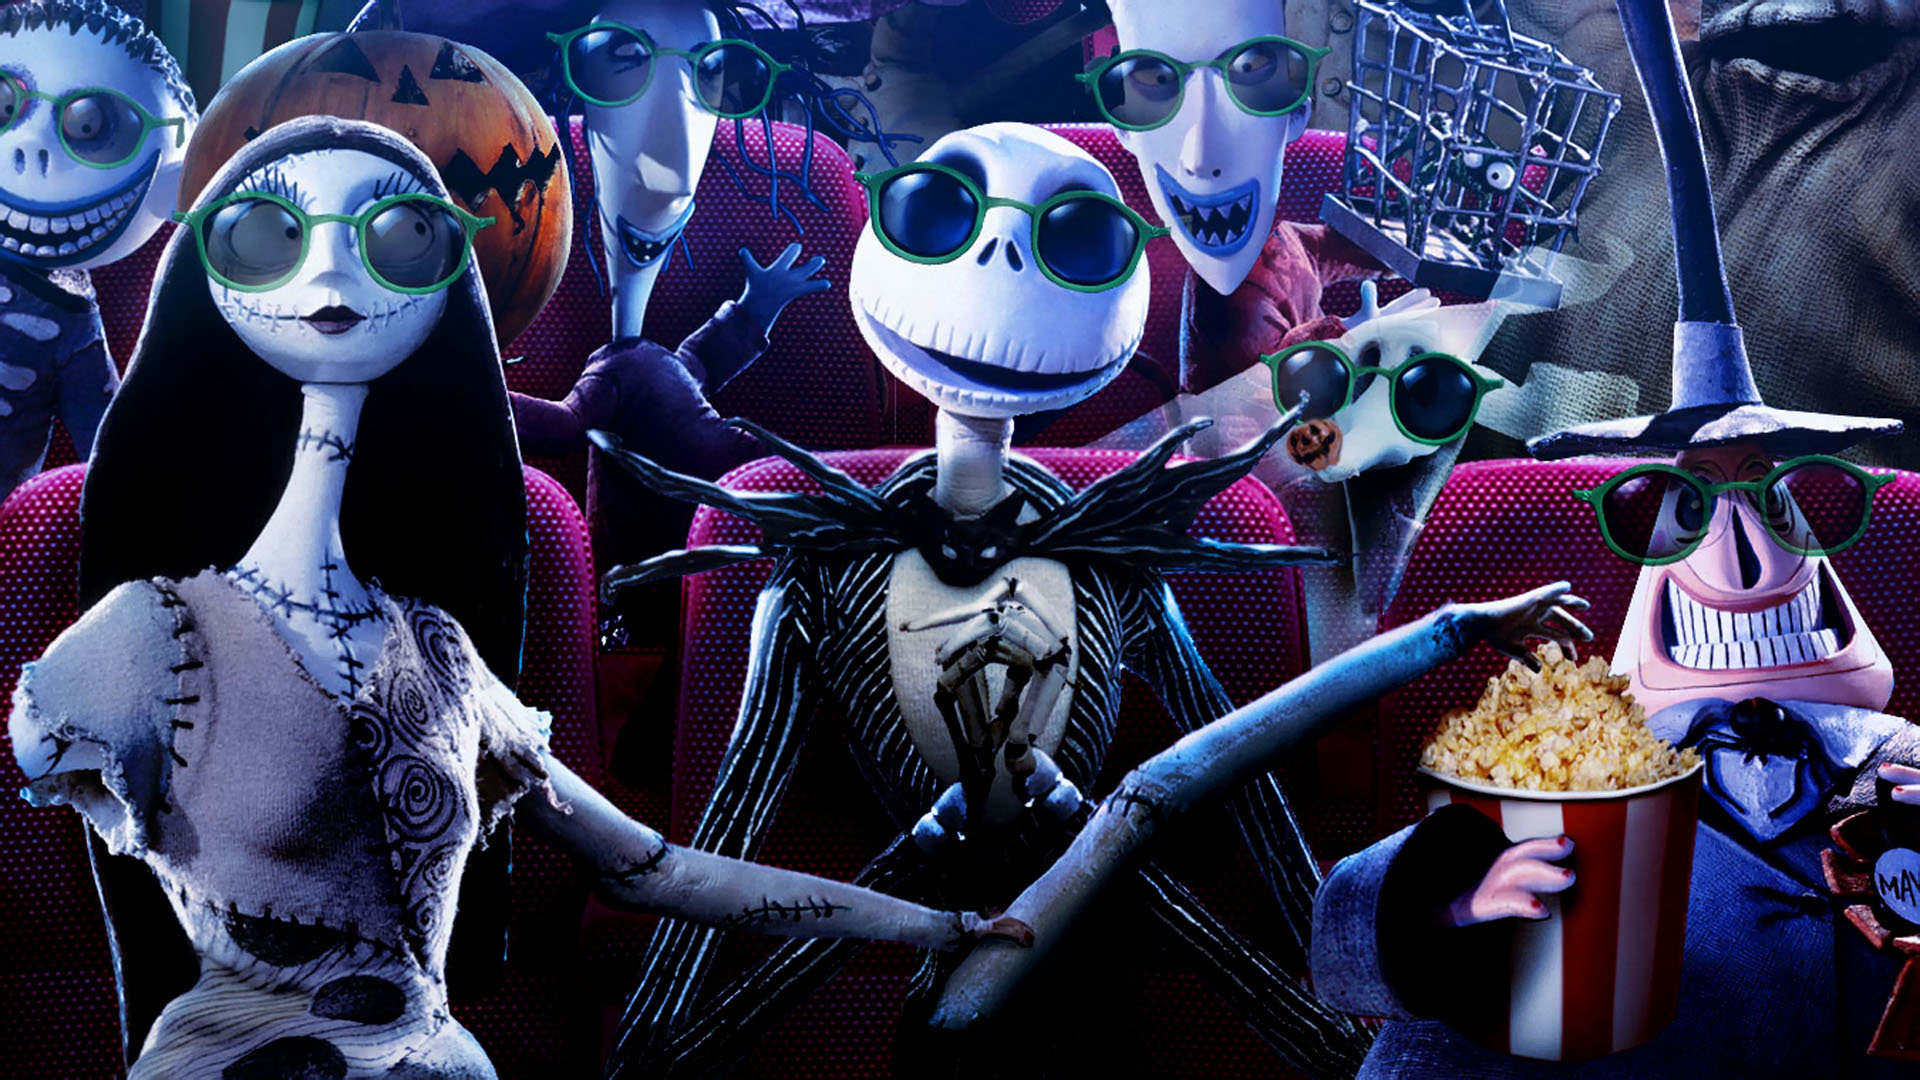 The Nightmare Before Christmas Wallpapers Hd For Desktop Backgrounds